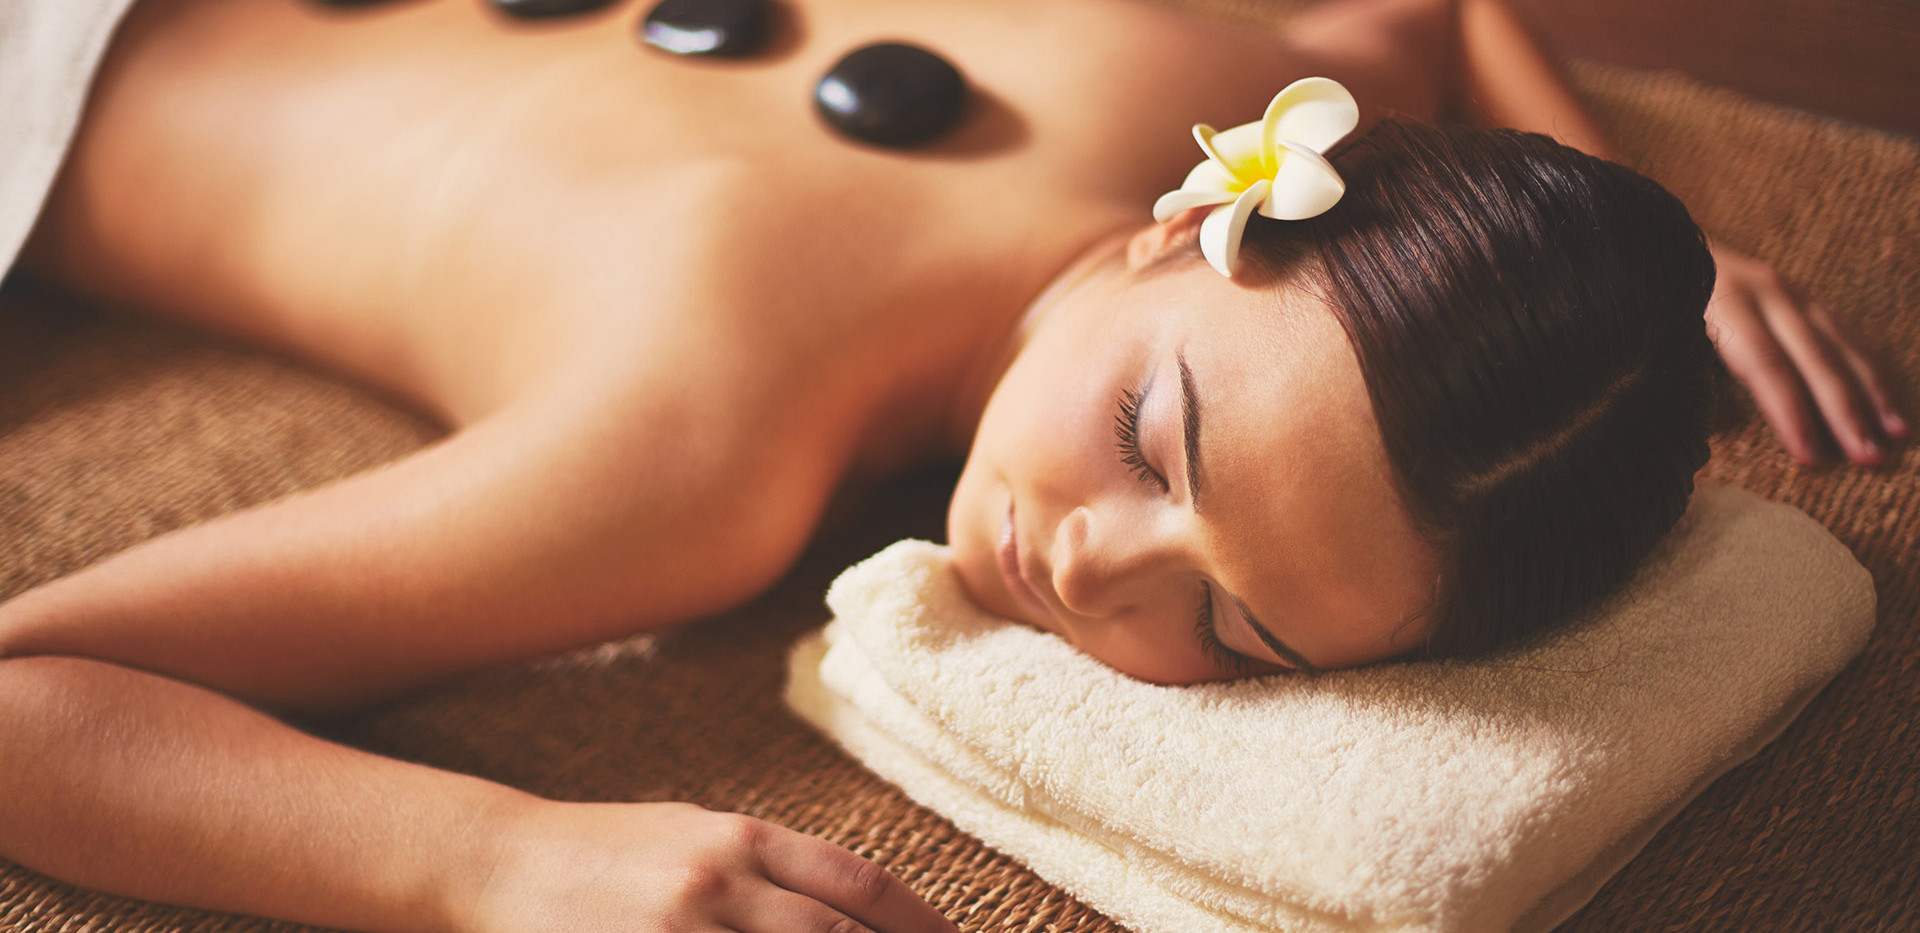 Woman-enjoying-stone-massage.jpg